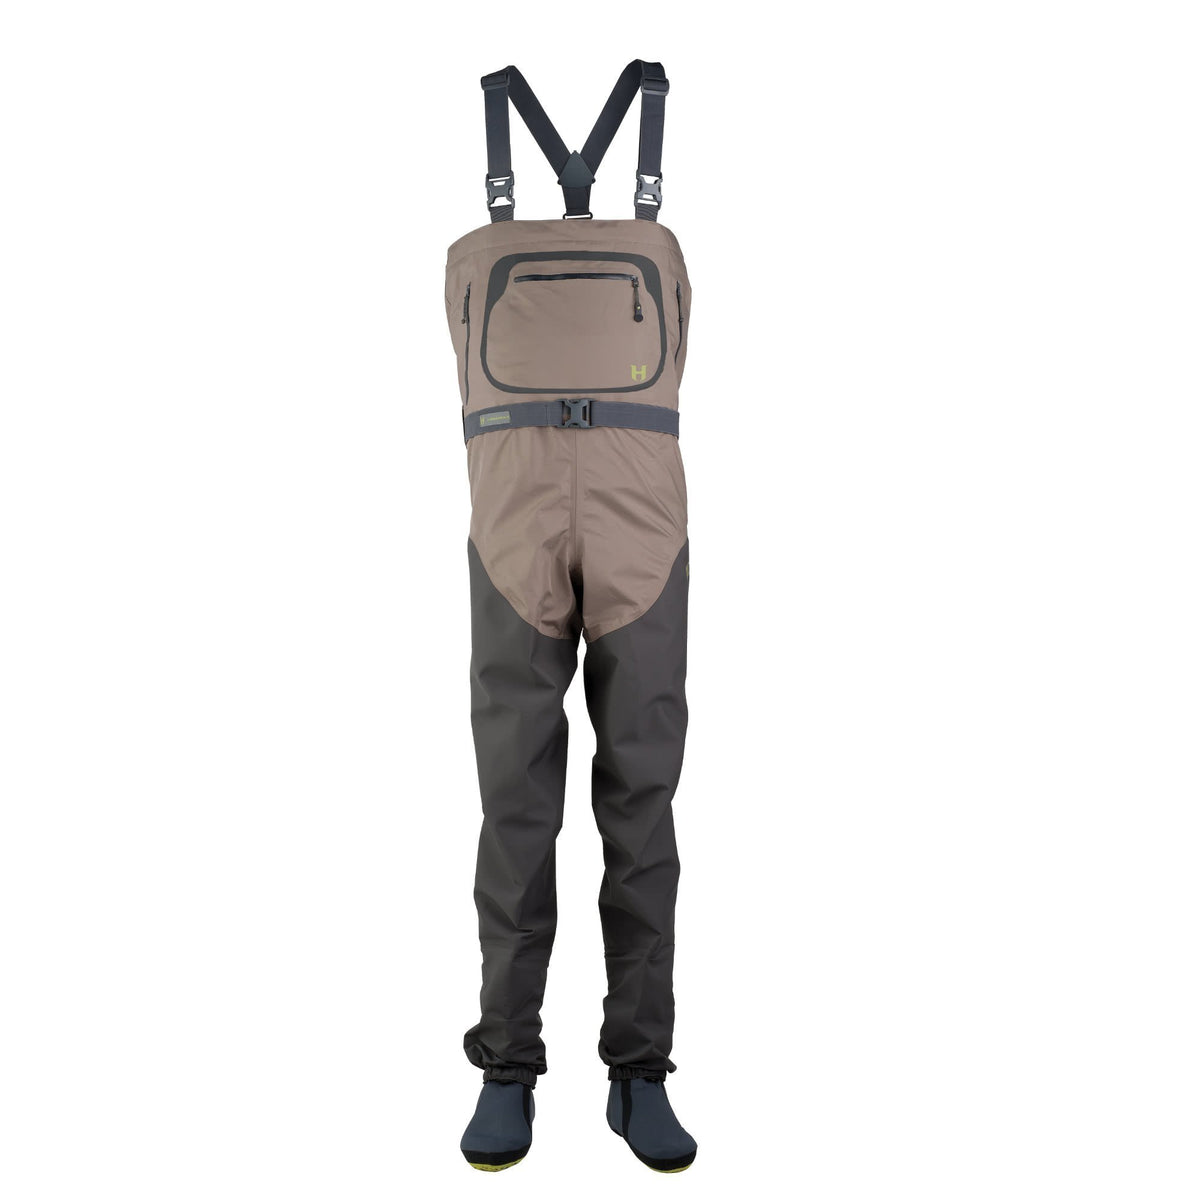 Hodgman H5 Stocking Foot Waders